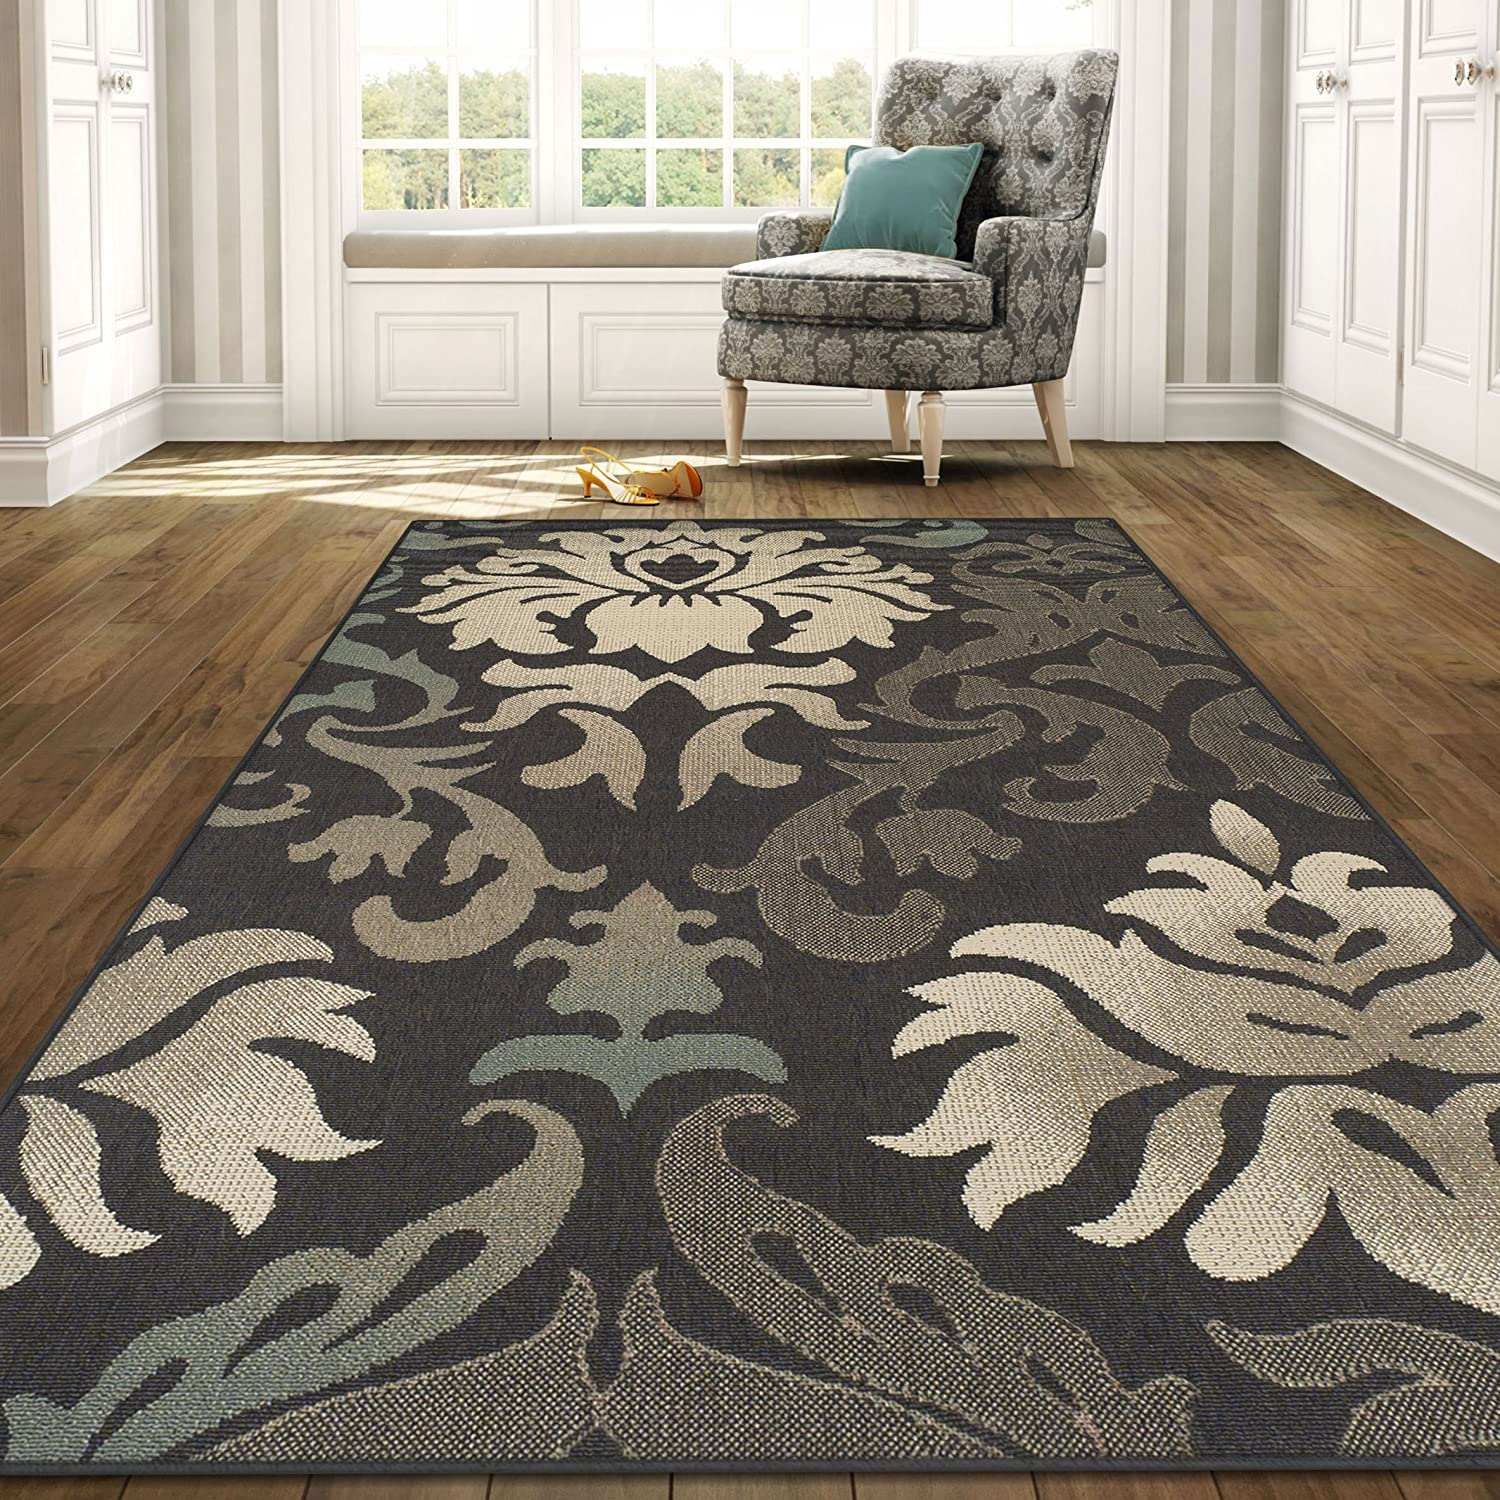 Superior Lowell Collection 2' x 3' Area Rug, Indoor/Outdoor Rug with Jute Backing, Durable and Beautiful Woven Structure, Grey, Beige, and Teal Floral 2X3RUG-LOWELL